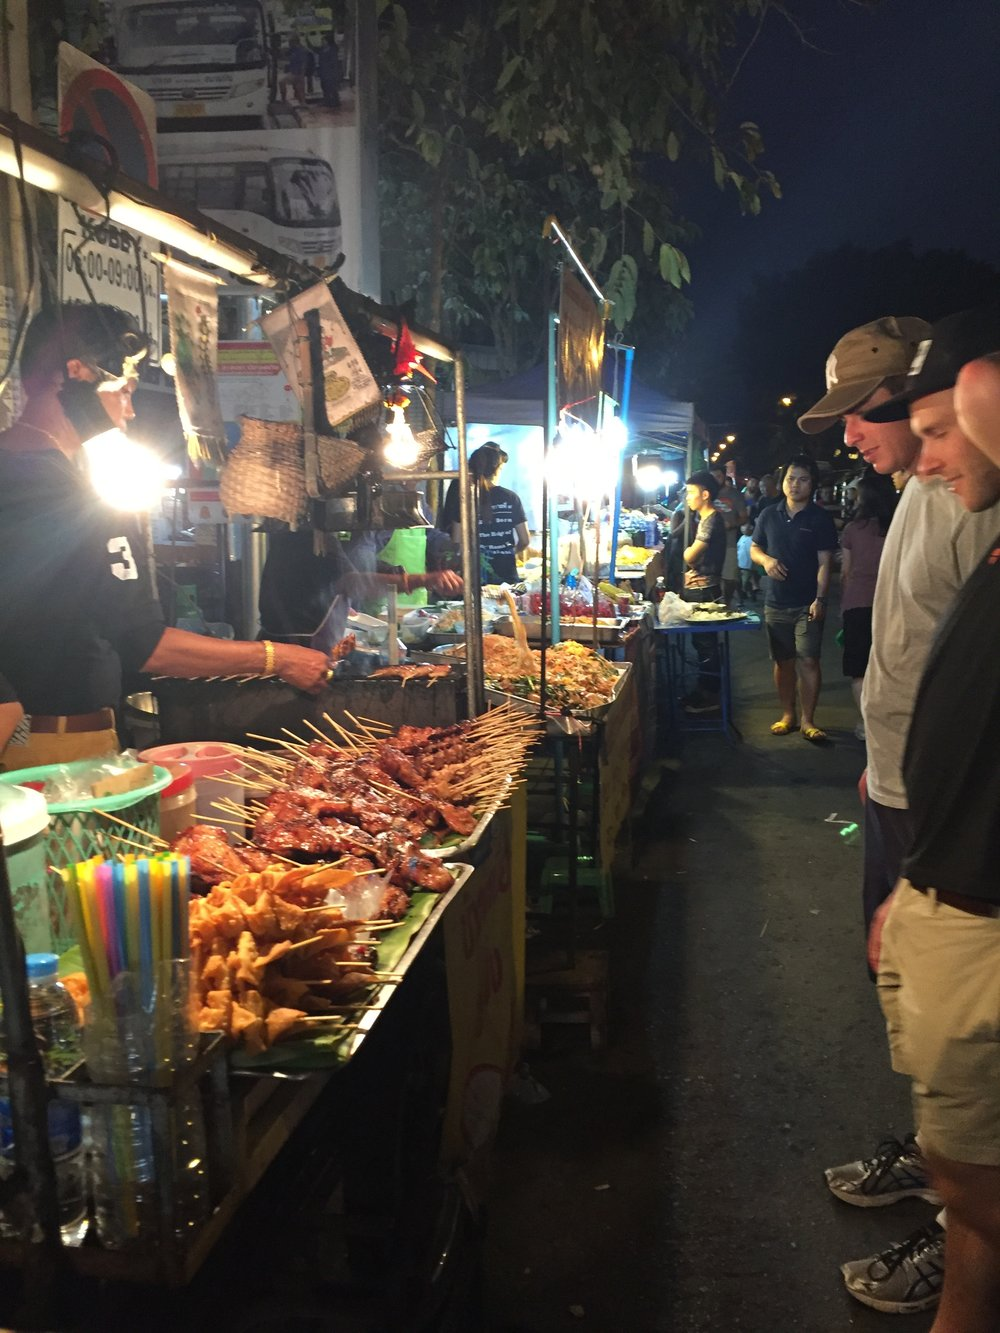 The street markets were full of a huge variety of food options for $1 to $2 dollars a plate.